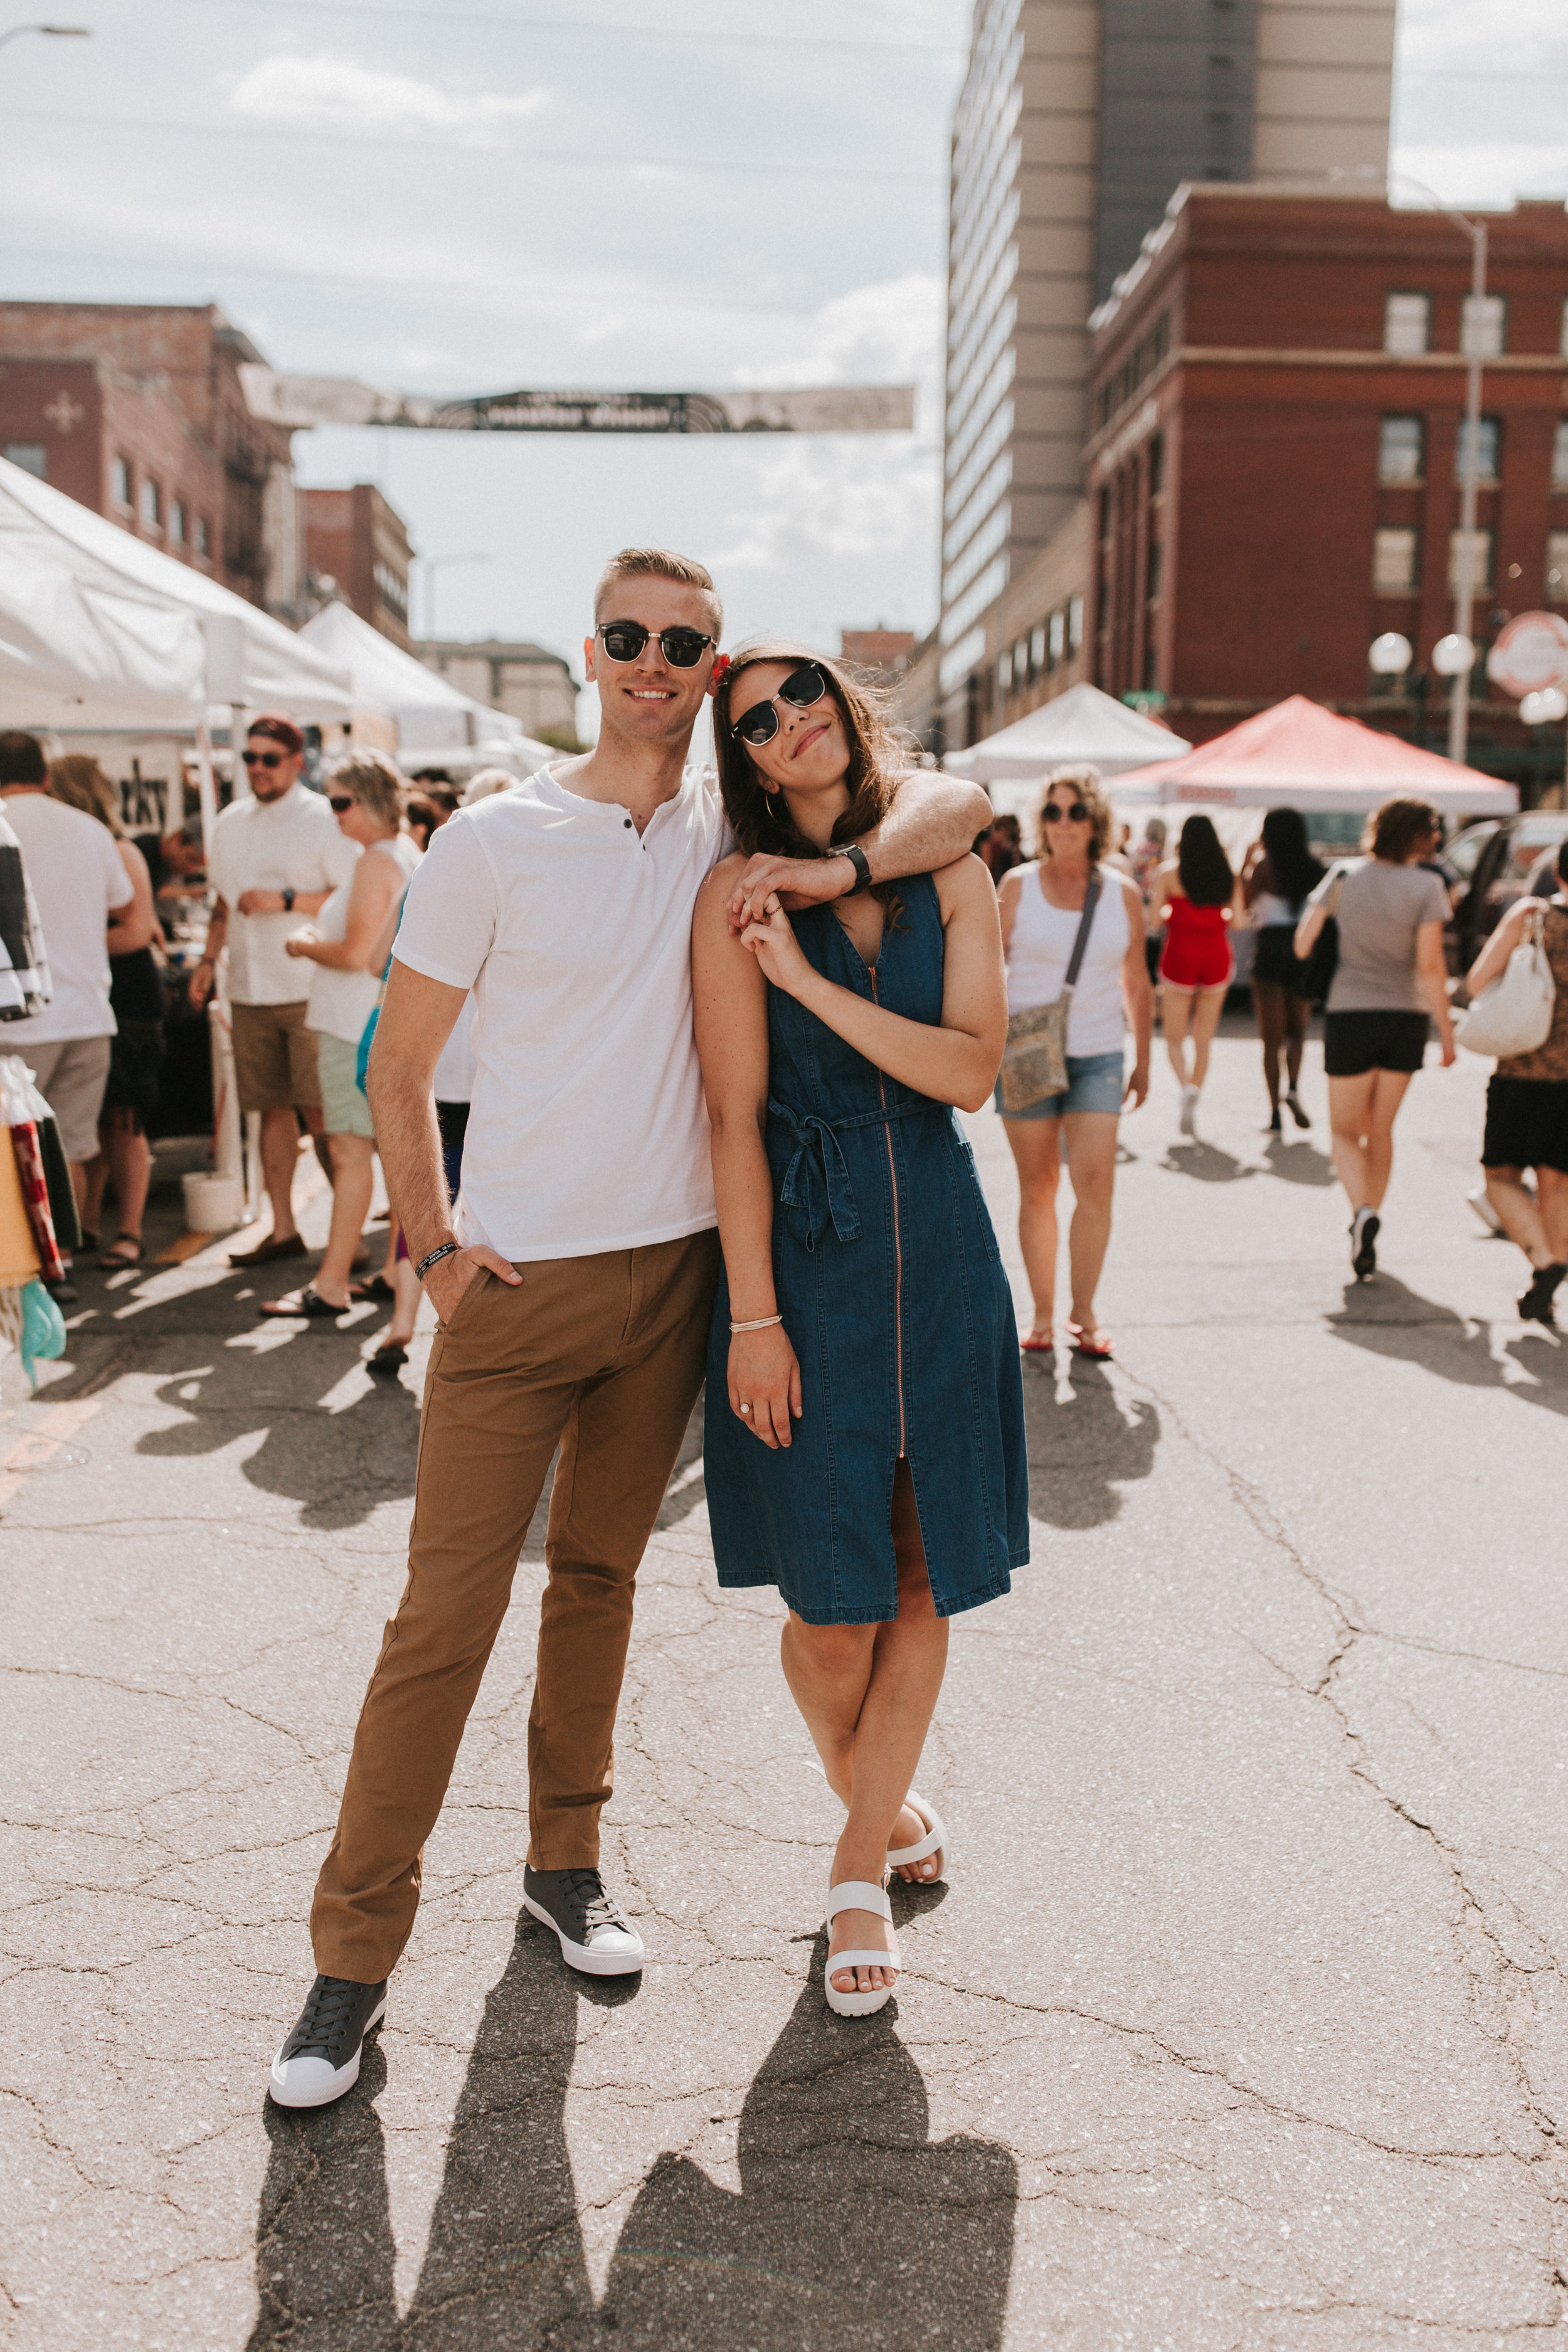 romantic_love_farmers_market_engagement_session_traveling_photographer